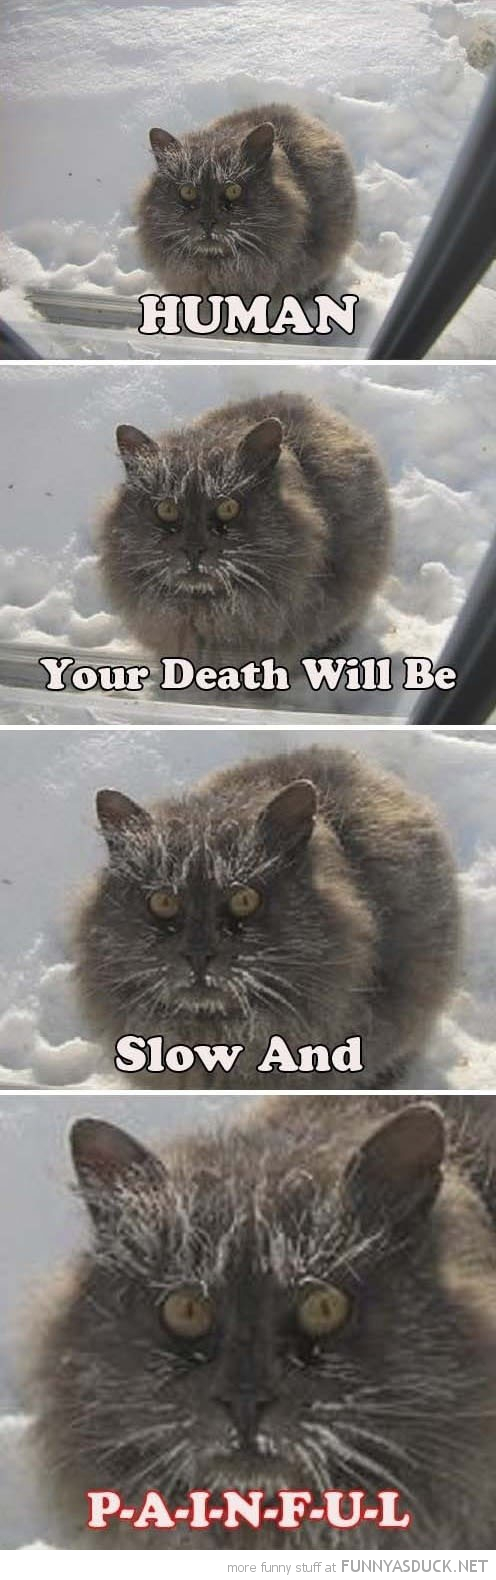 angry cat lolcat animal snow human death slow painful funny pics pictures pic picture image photo images photos lol